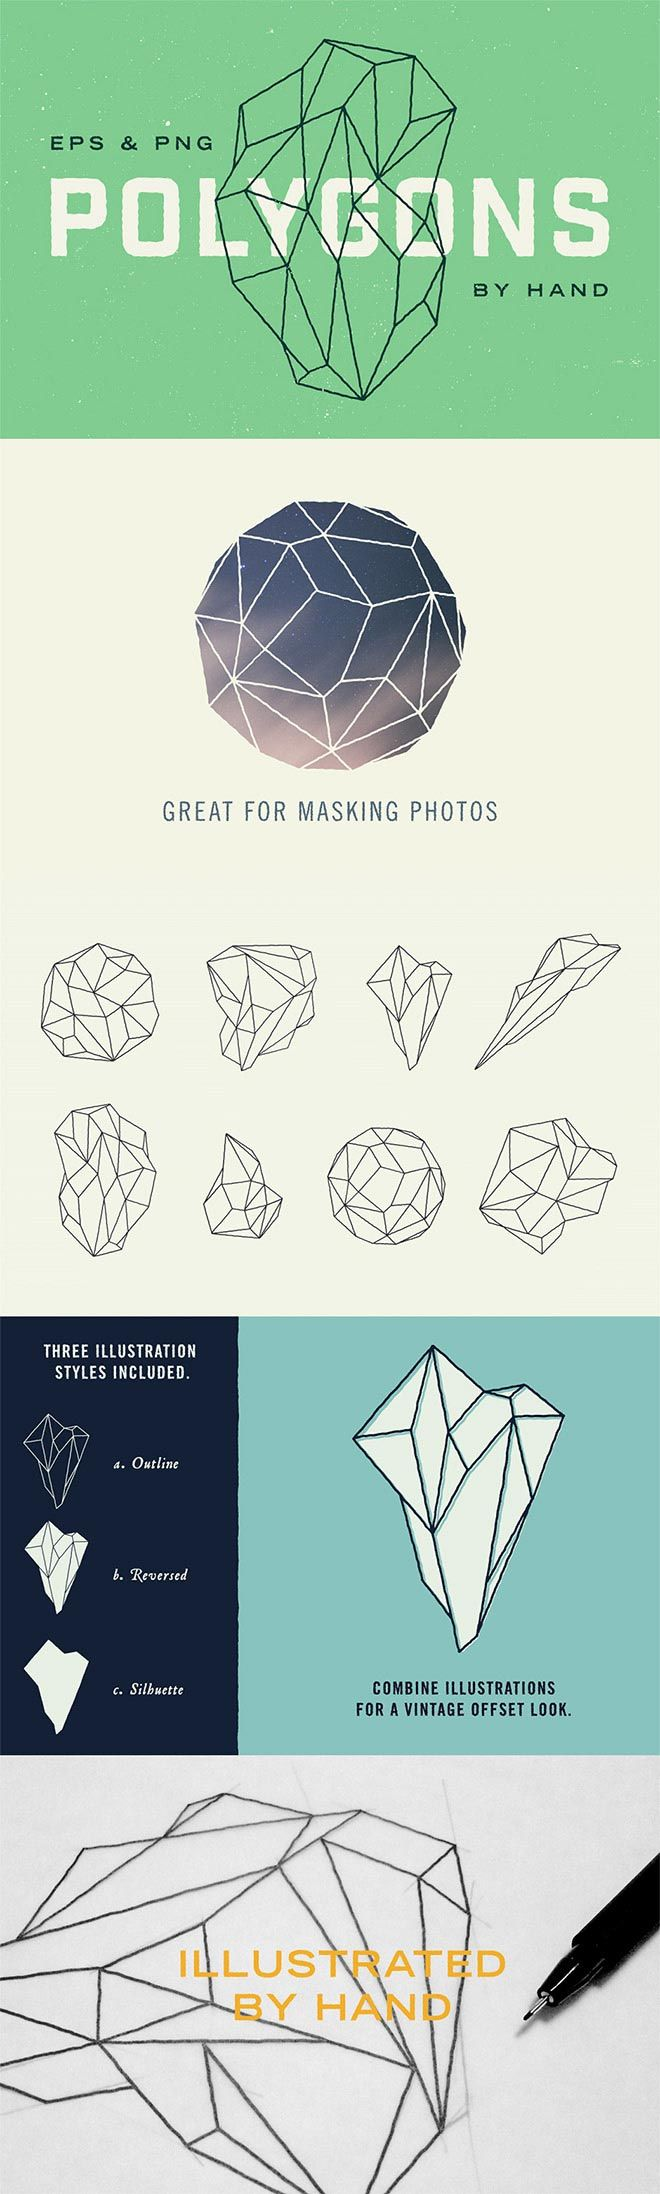 Best 25+ Graphic design ideas on Pinterest | Double exposure ...